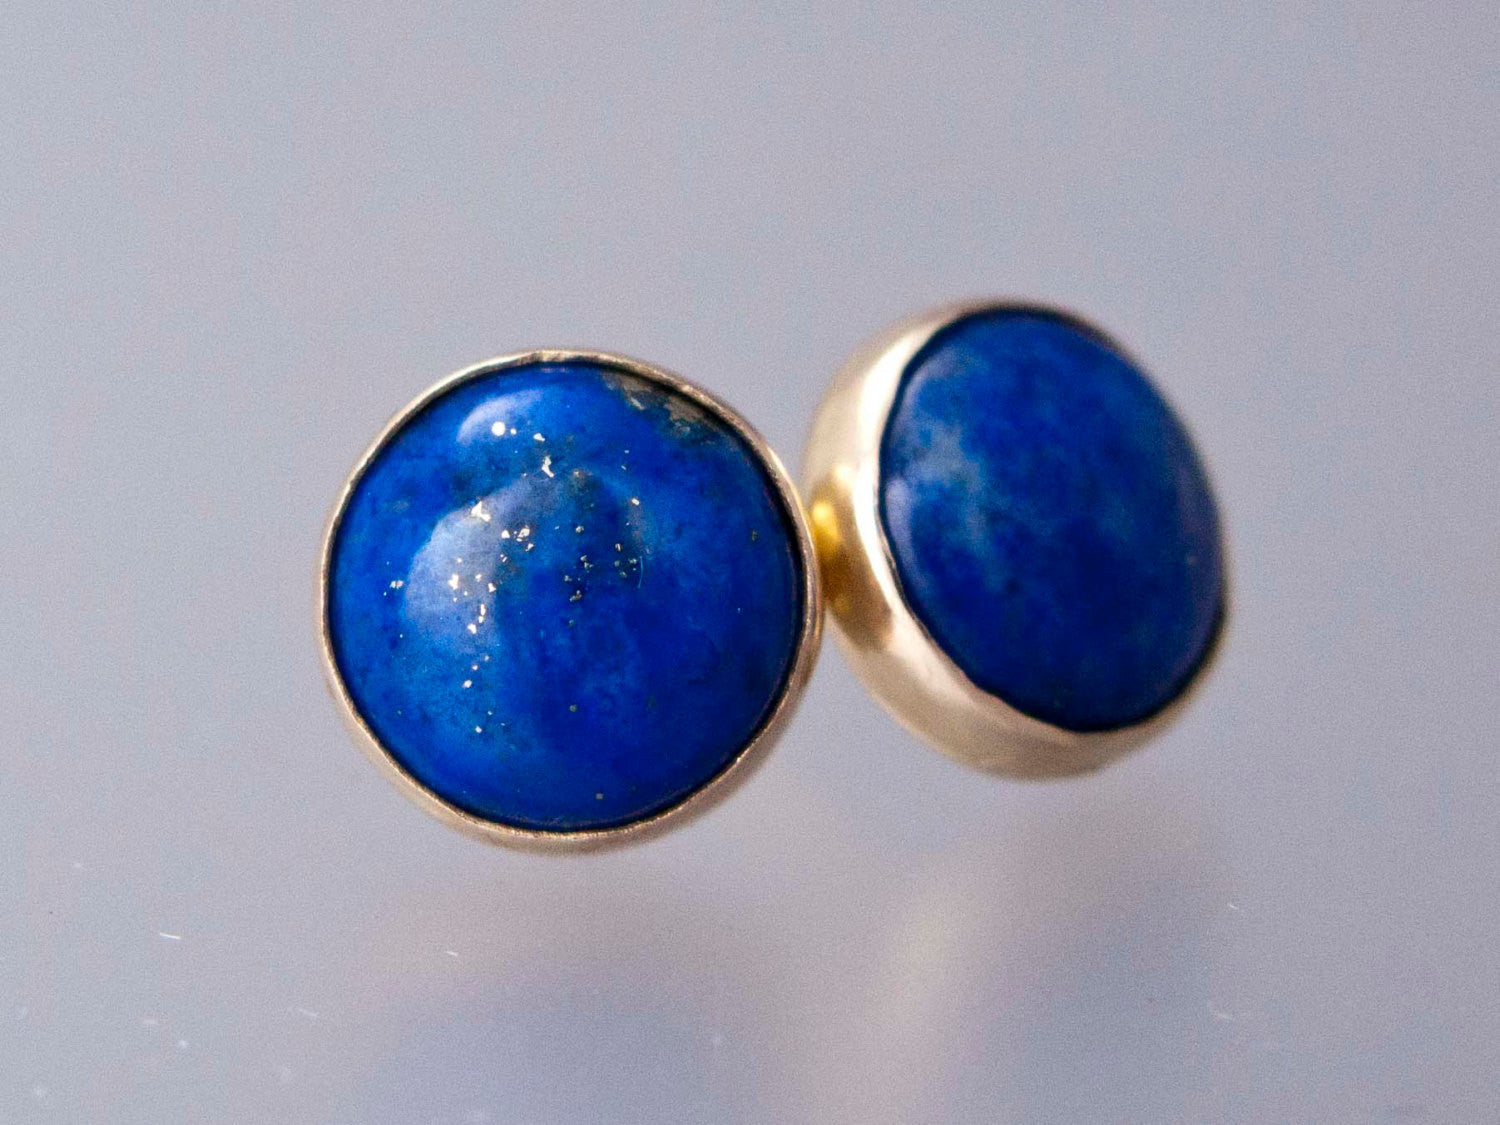 Lapis Lazuli Gold Stud Earrings - 8mm solid 14k gold settings, posts and backs